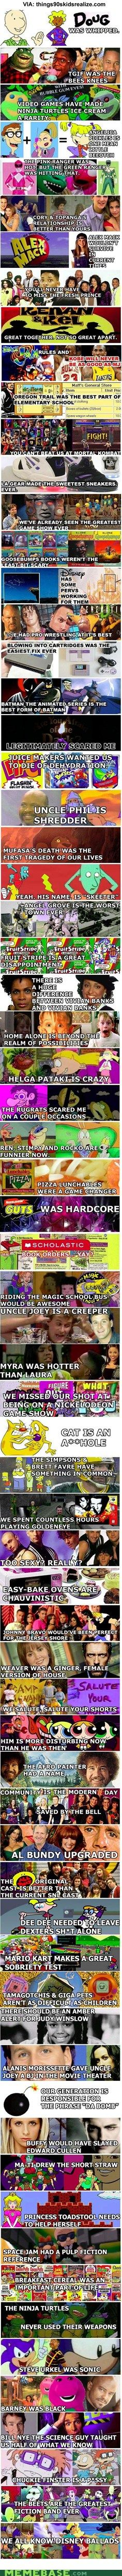 So glad I was a 90s kid